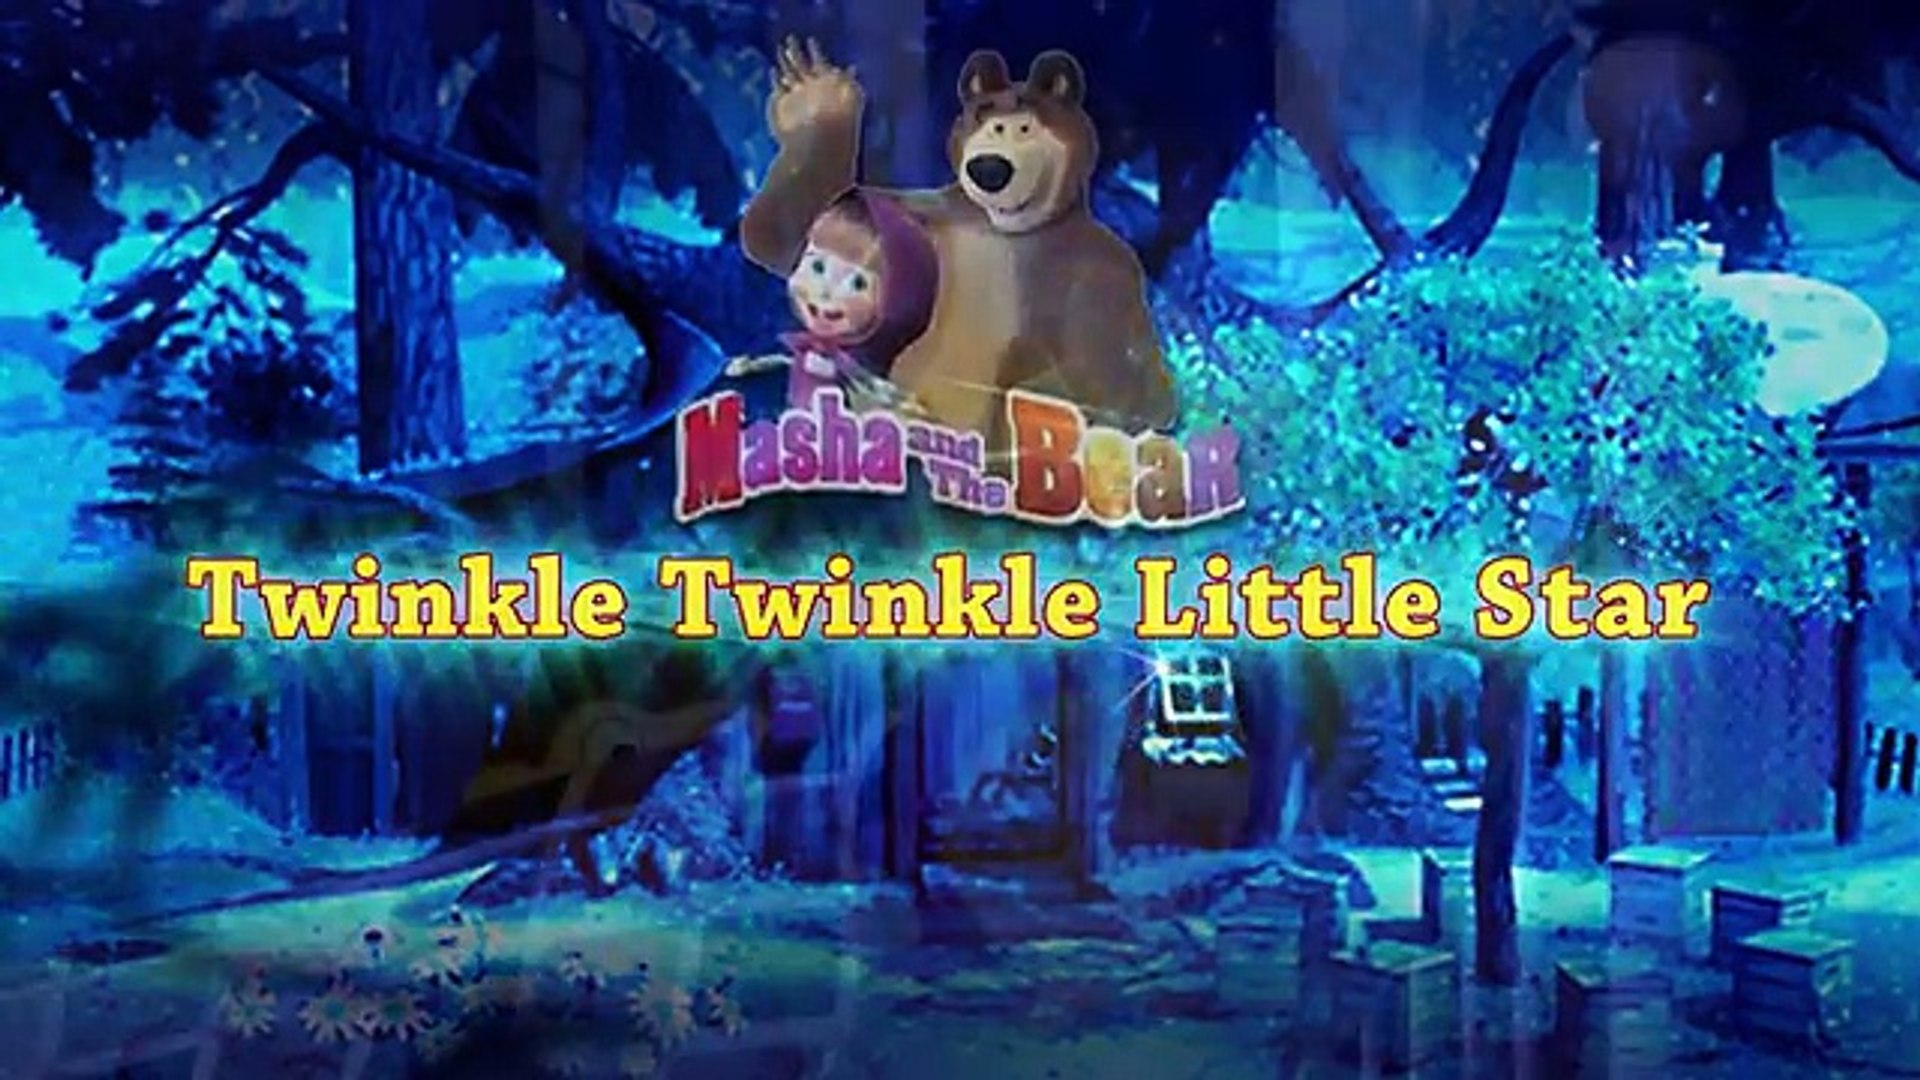 Twinkle Twinkle Little Star Masha and the Bear Nursery Rhymes- Маша и Медведь Ты свети звезда моя